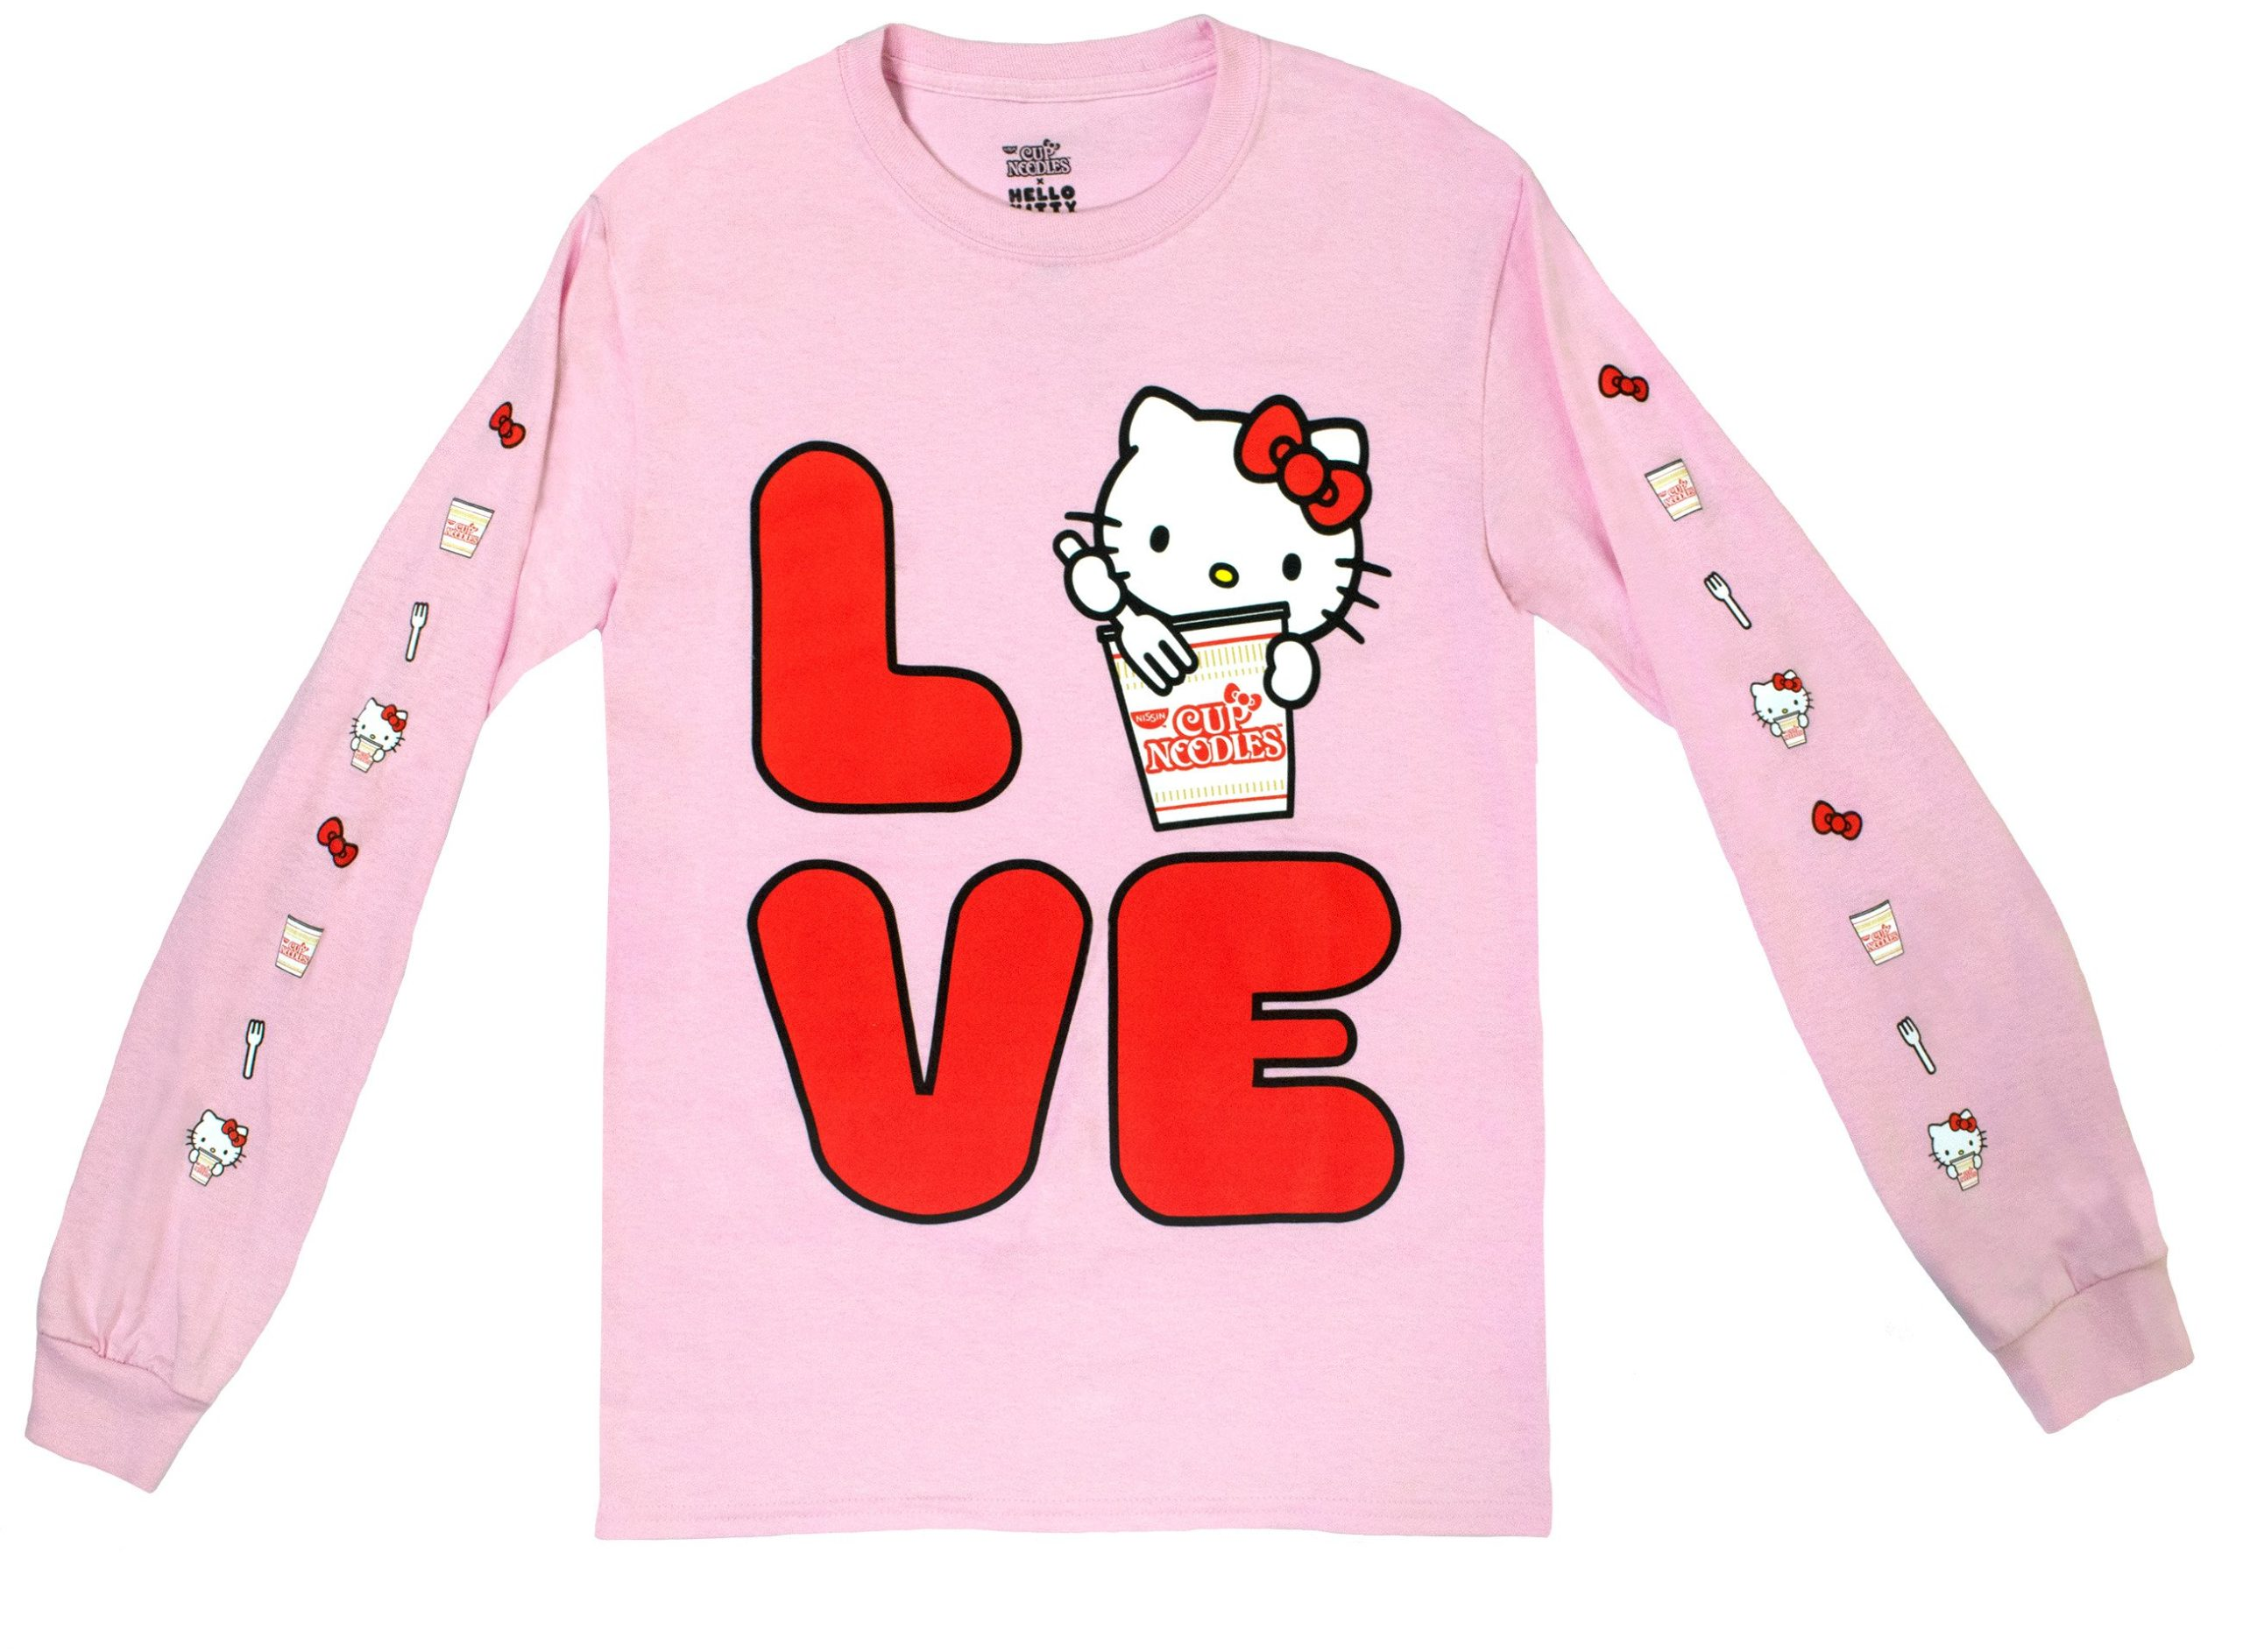 Sanrio and Nissin collab for a clothing collection featuring Hello Kitty and Gudetama 15